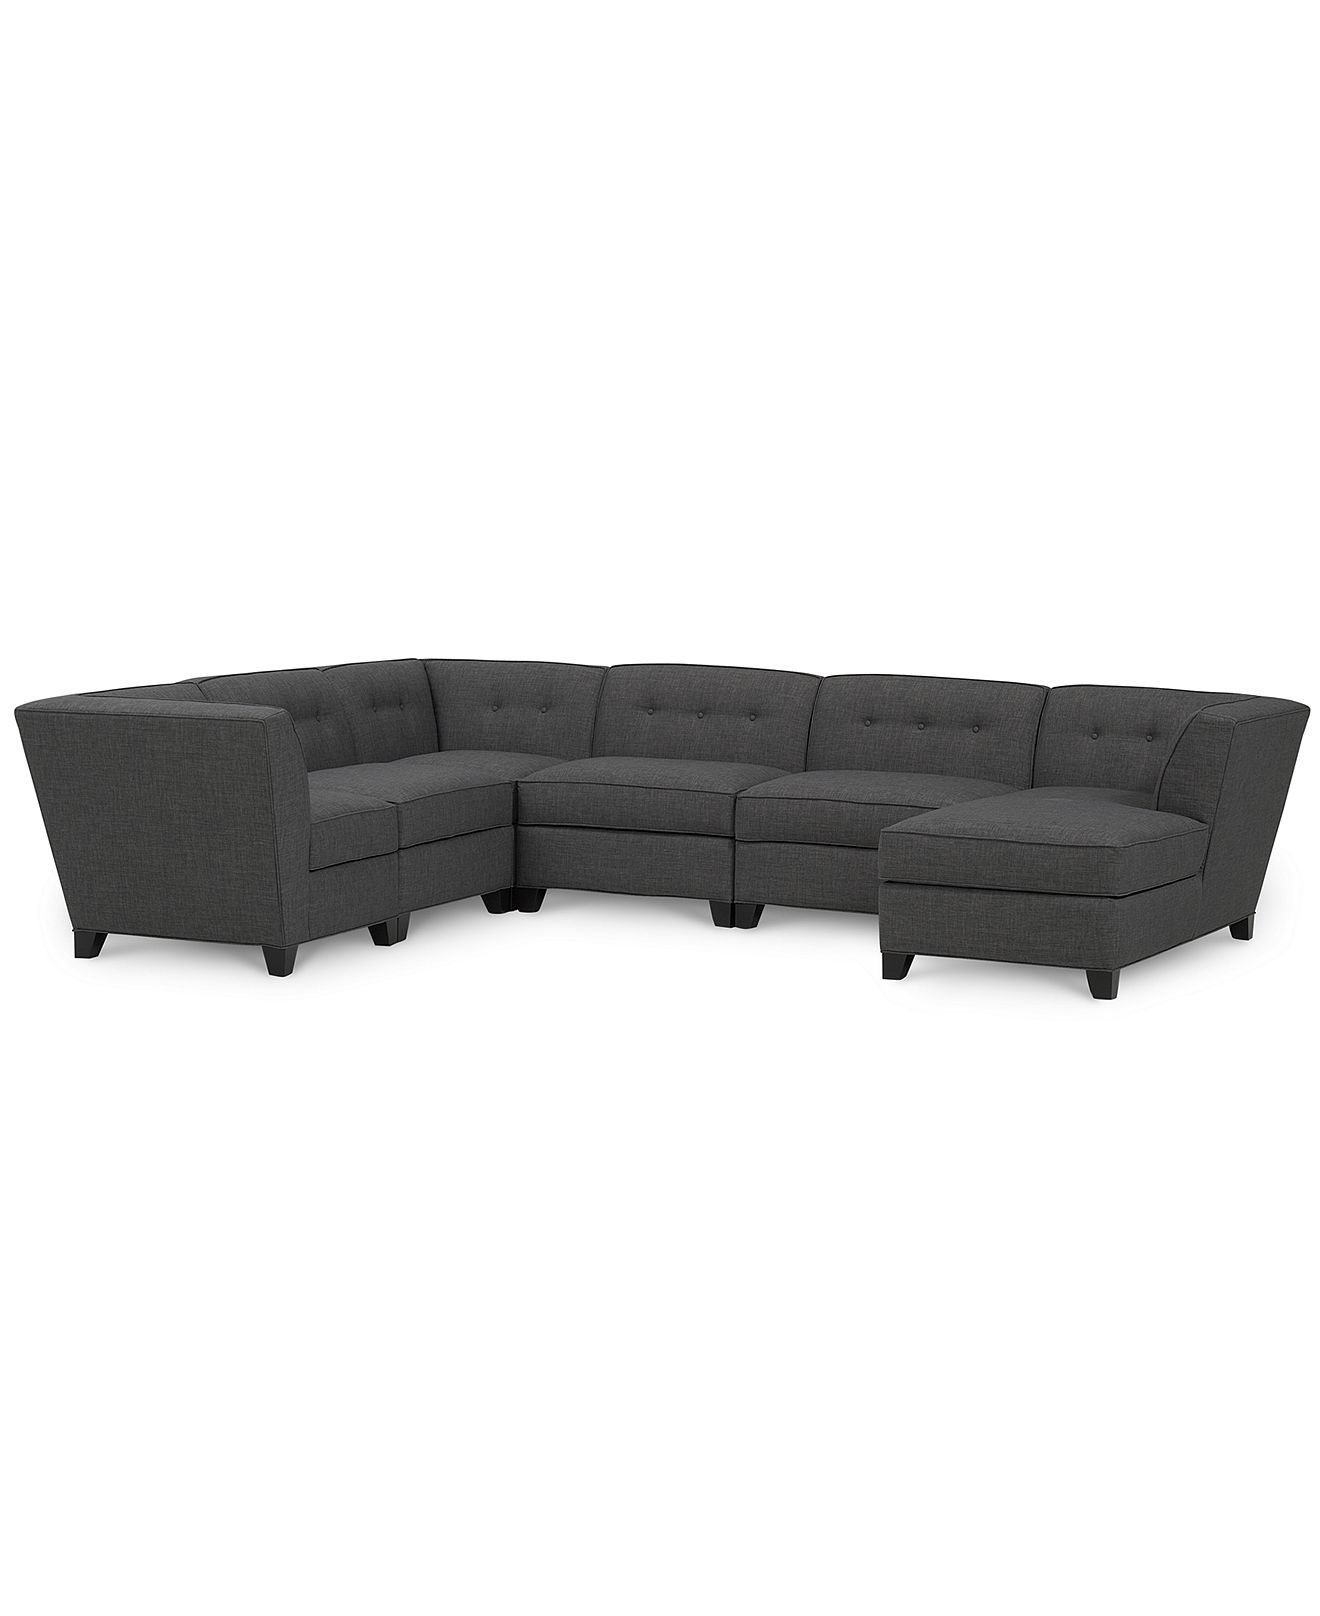 Best Harper Fabric 6 Piece Modular Sectional Sofa 2 Square 400 x 300